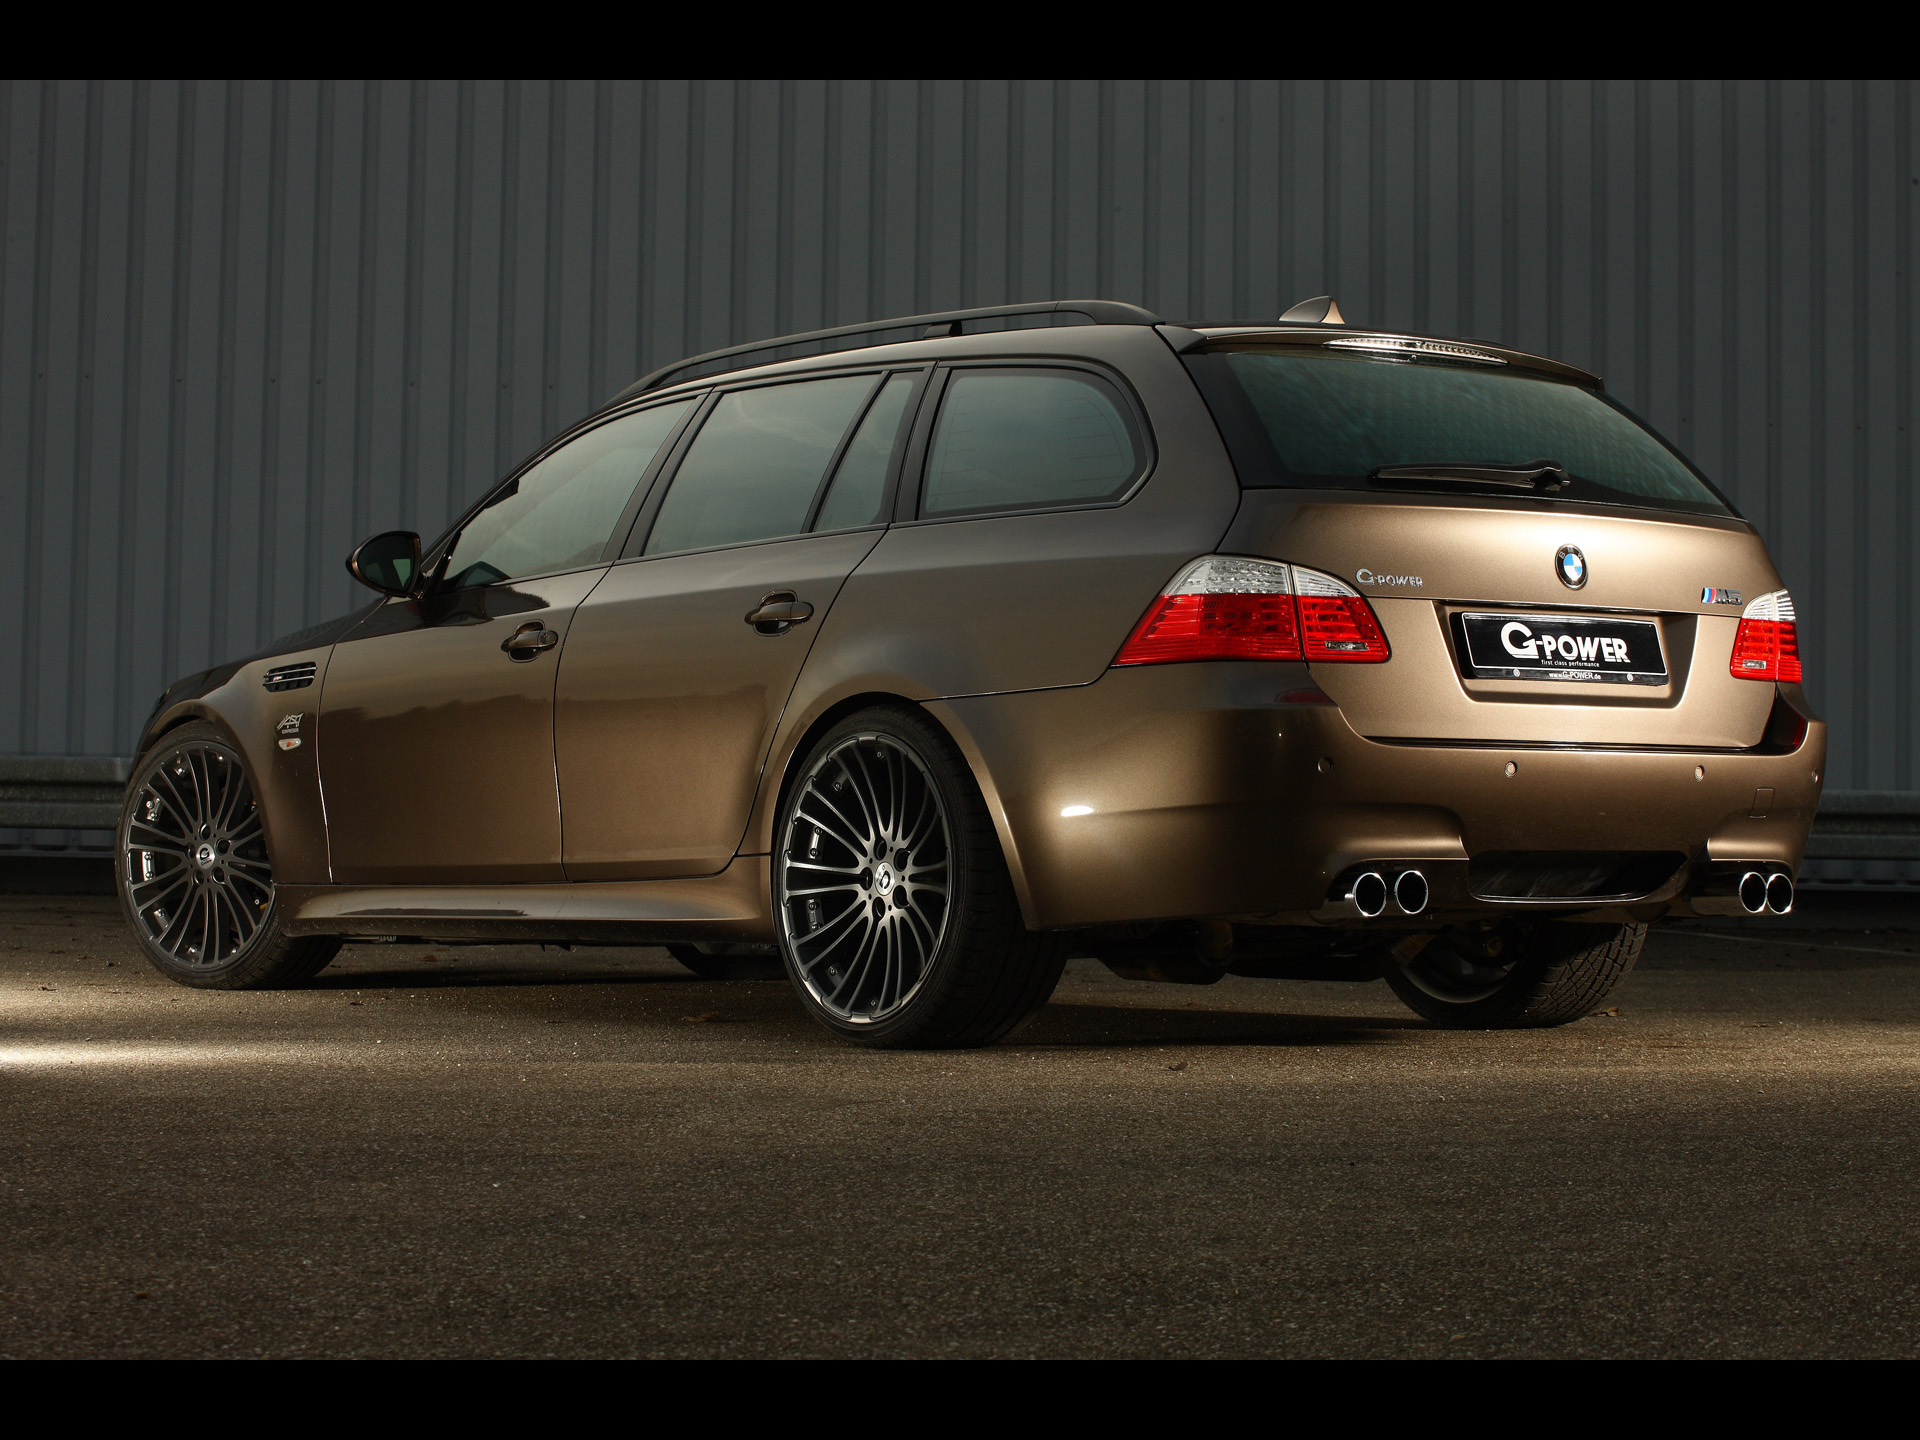 Bmw Images Bmw M5 E61 Hurricane Rs Touring By G Power Hd Wallpaper